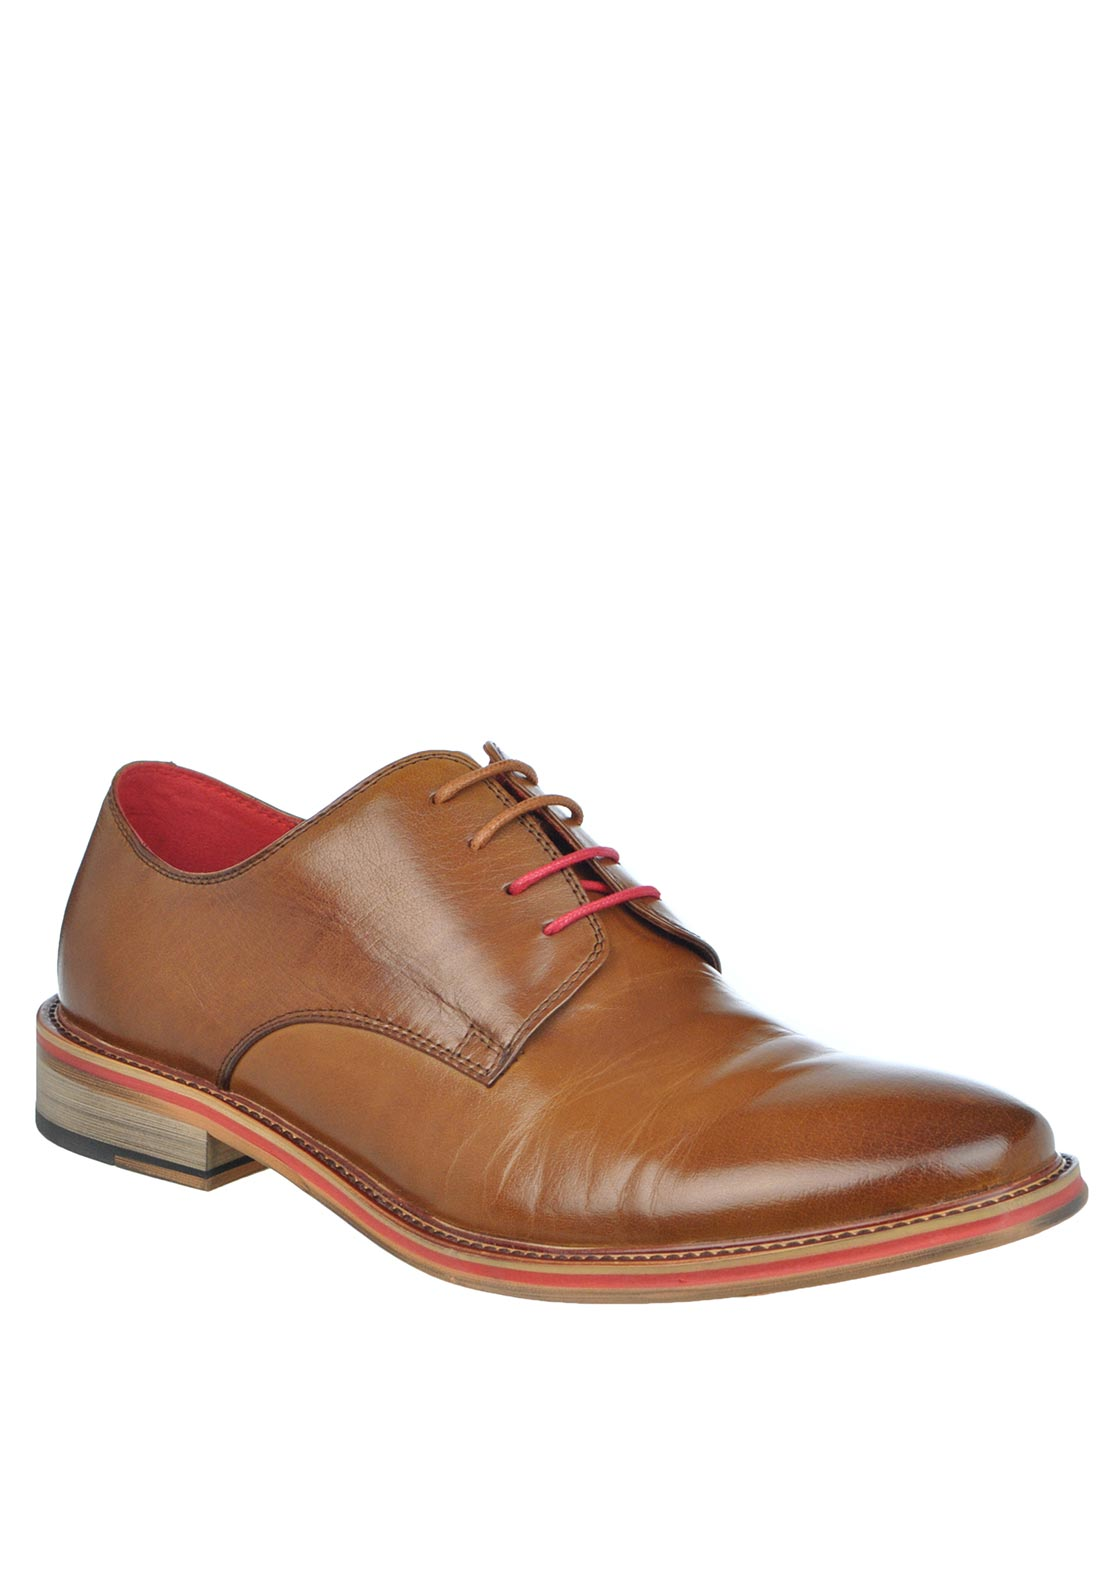 Justin Reece Alfred Lace Up Leather Shoe, Brown